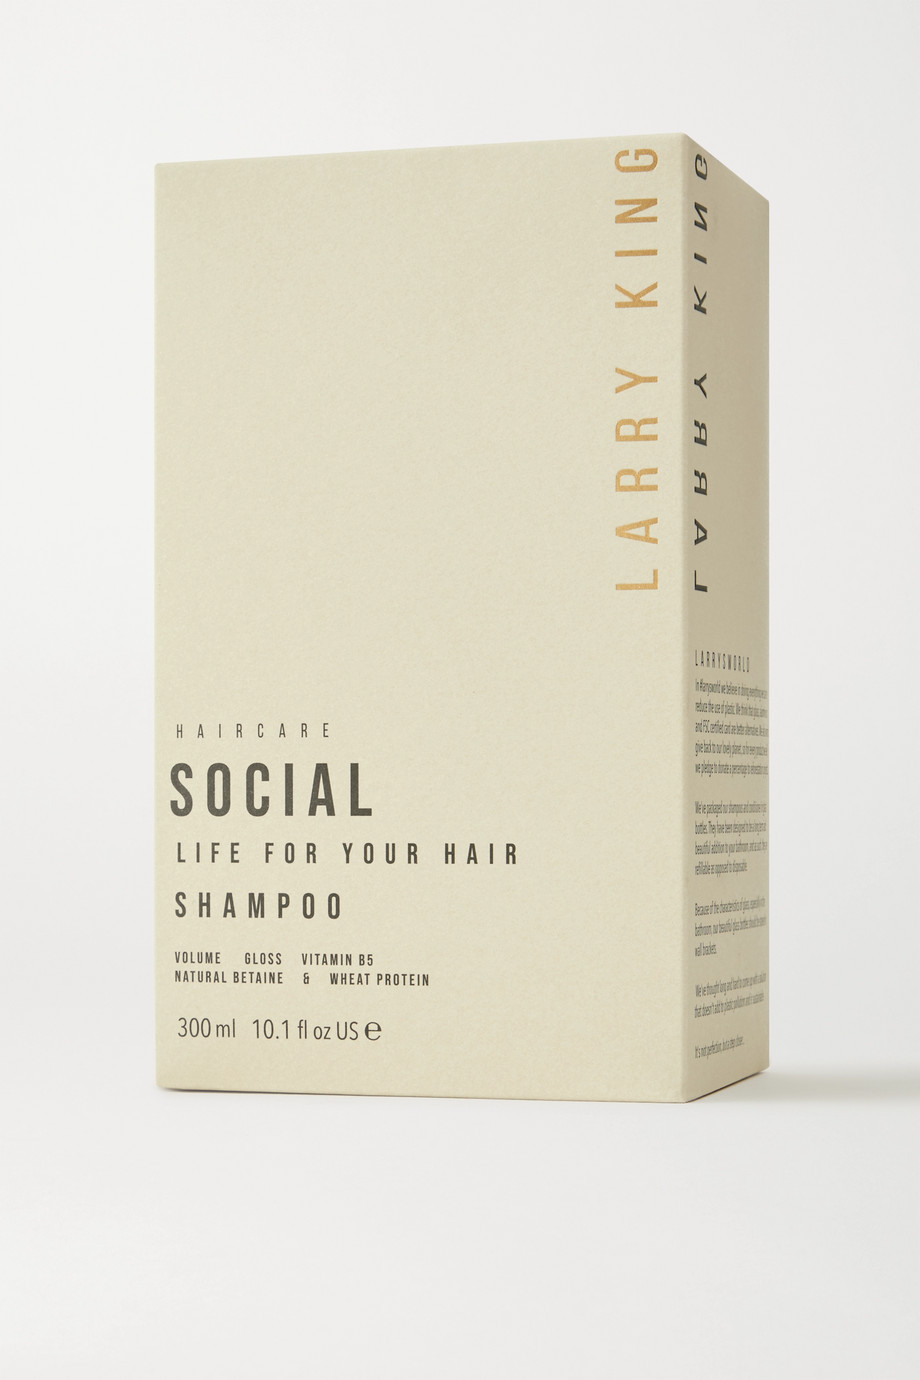 Larry King Social Life Shampoo, 300 ml – Shampoo